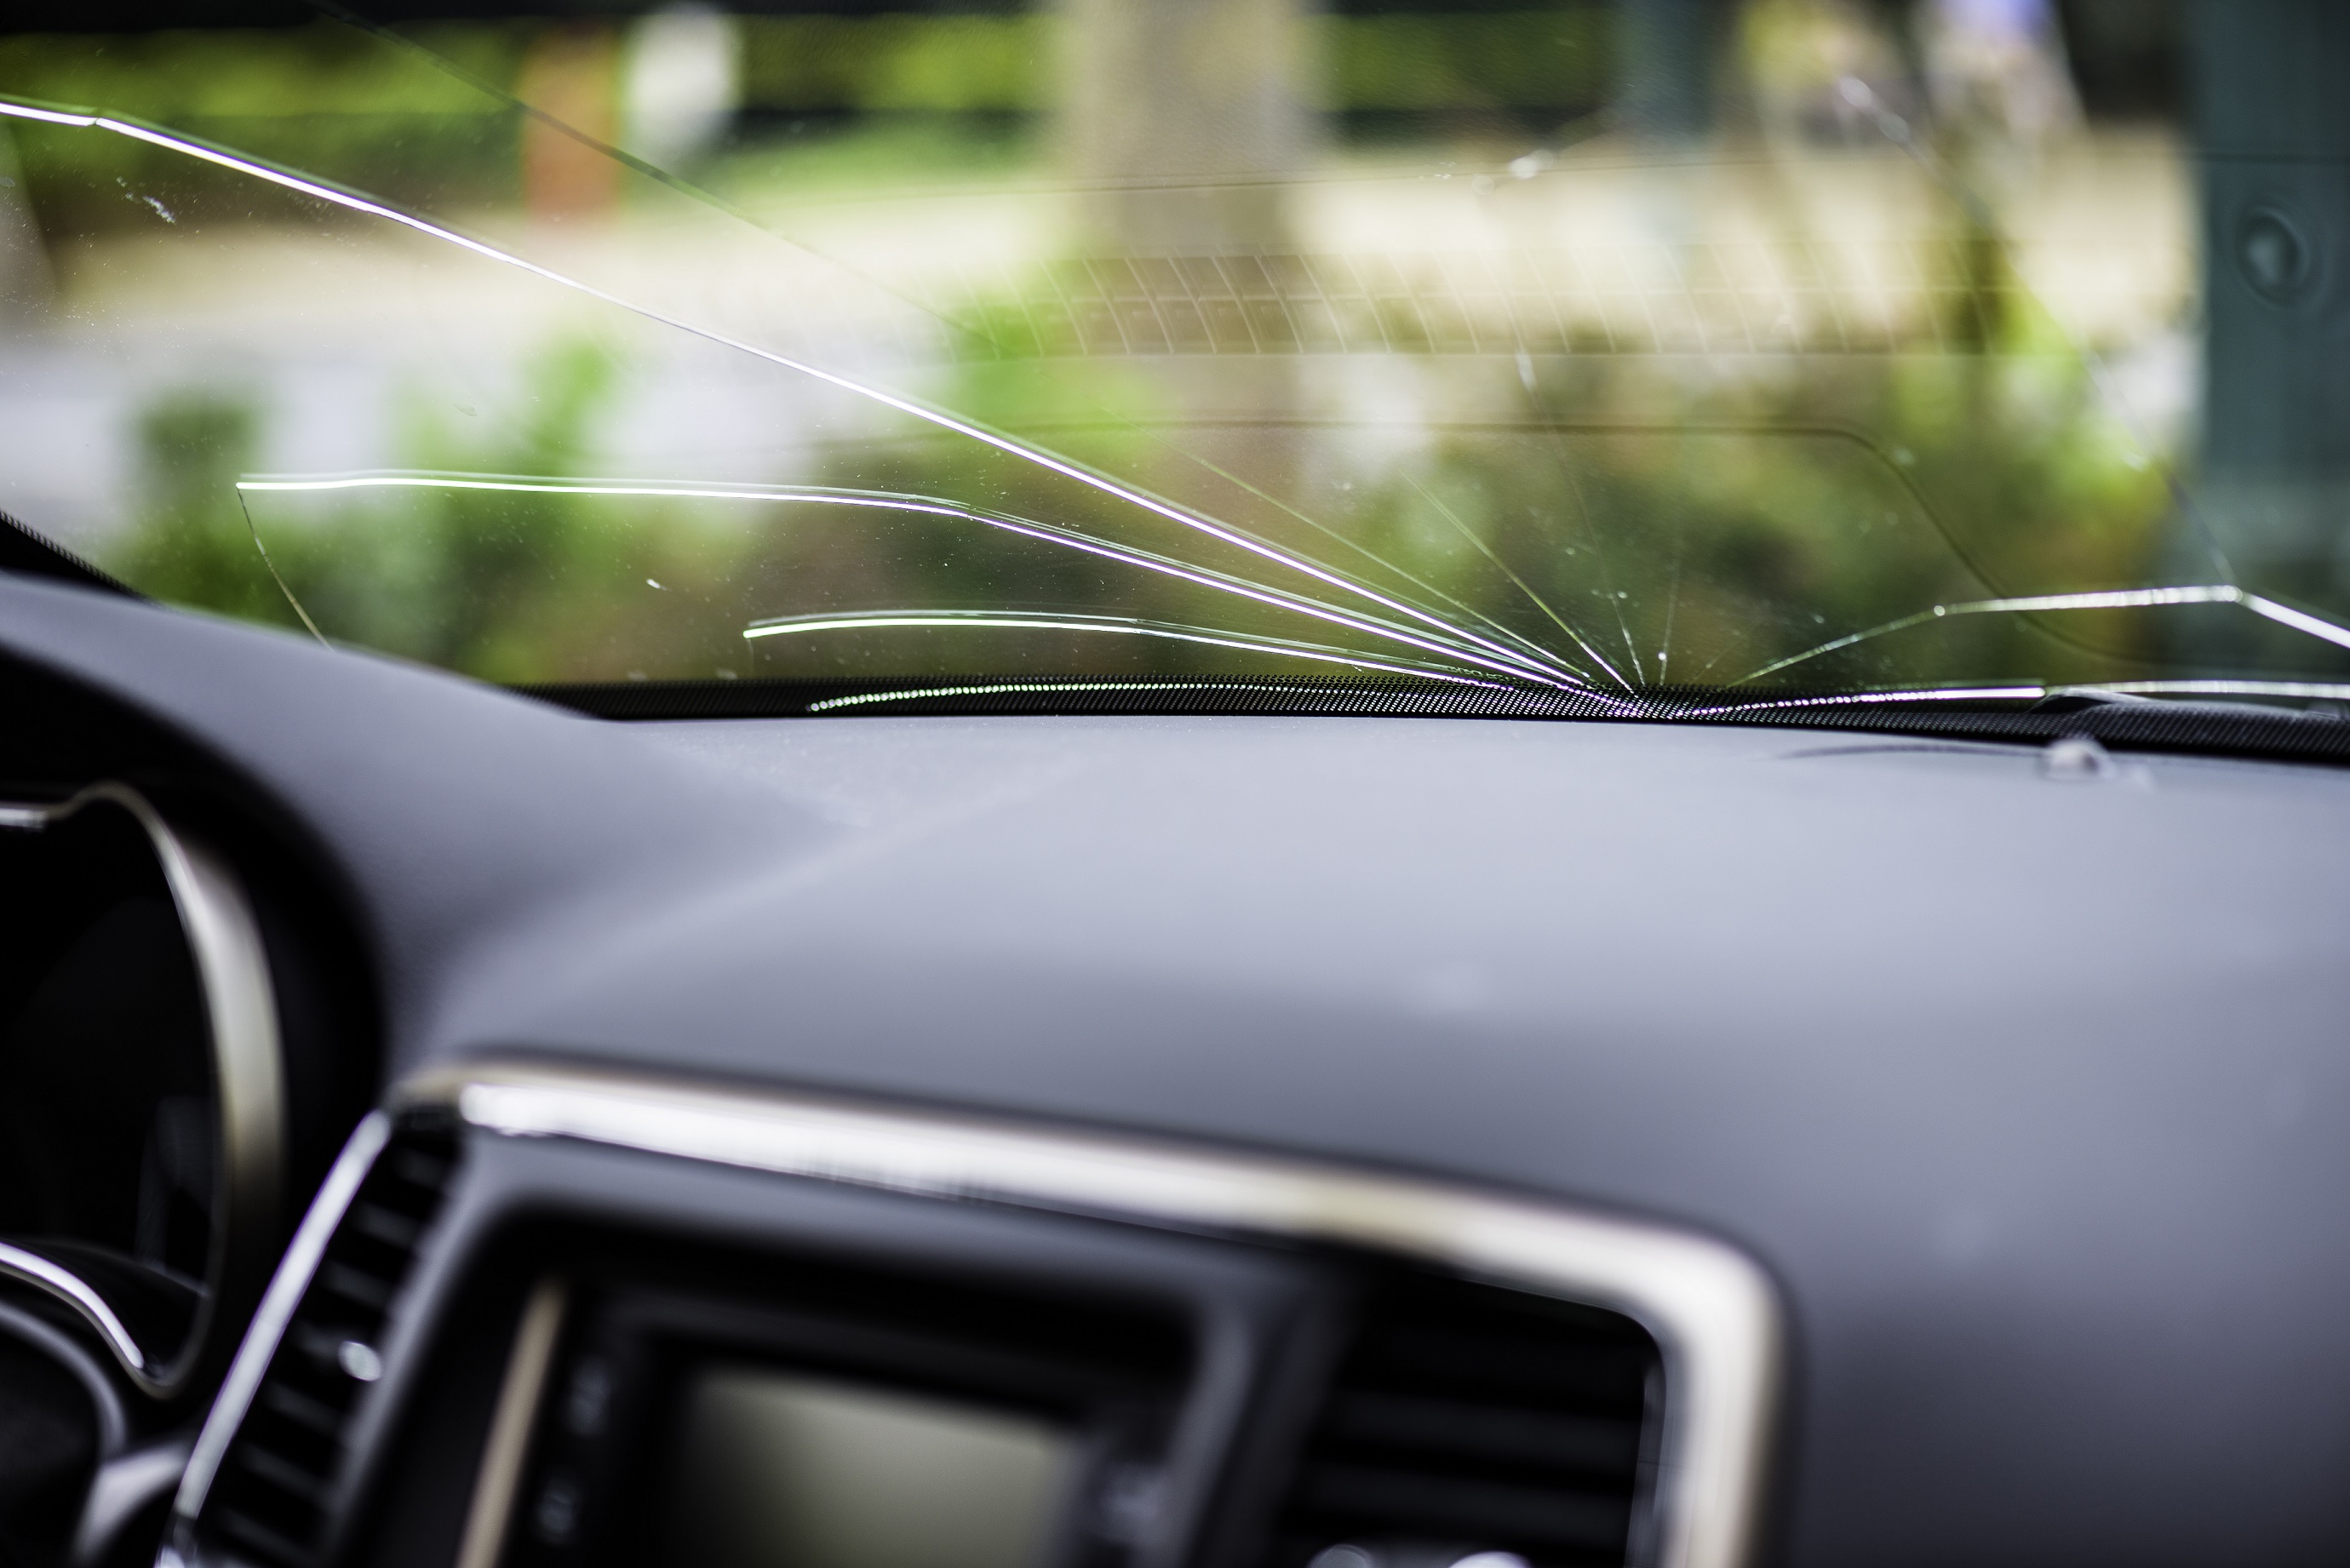 Windshield Crack Repair And Replacement